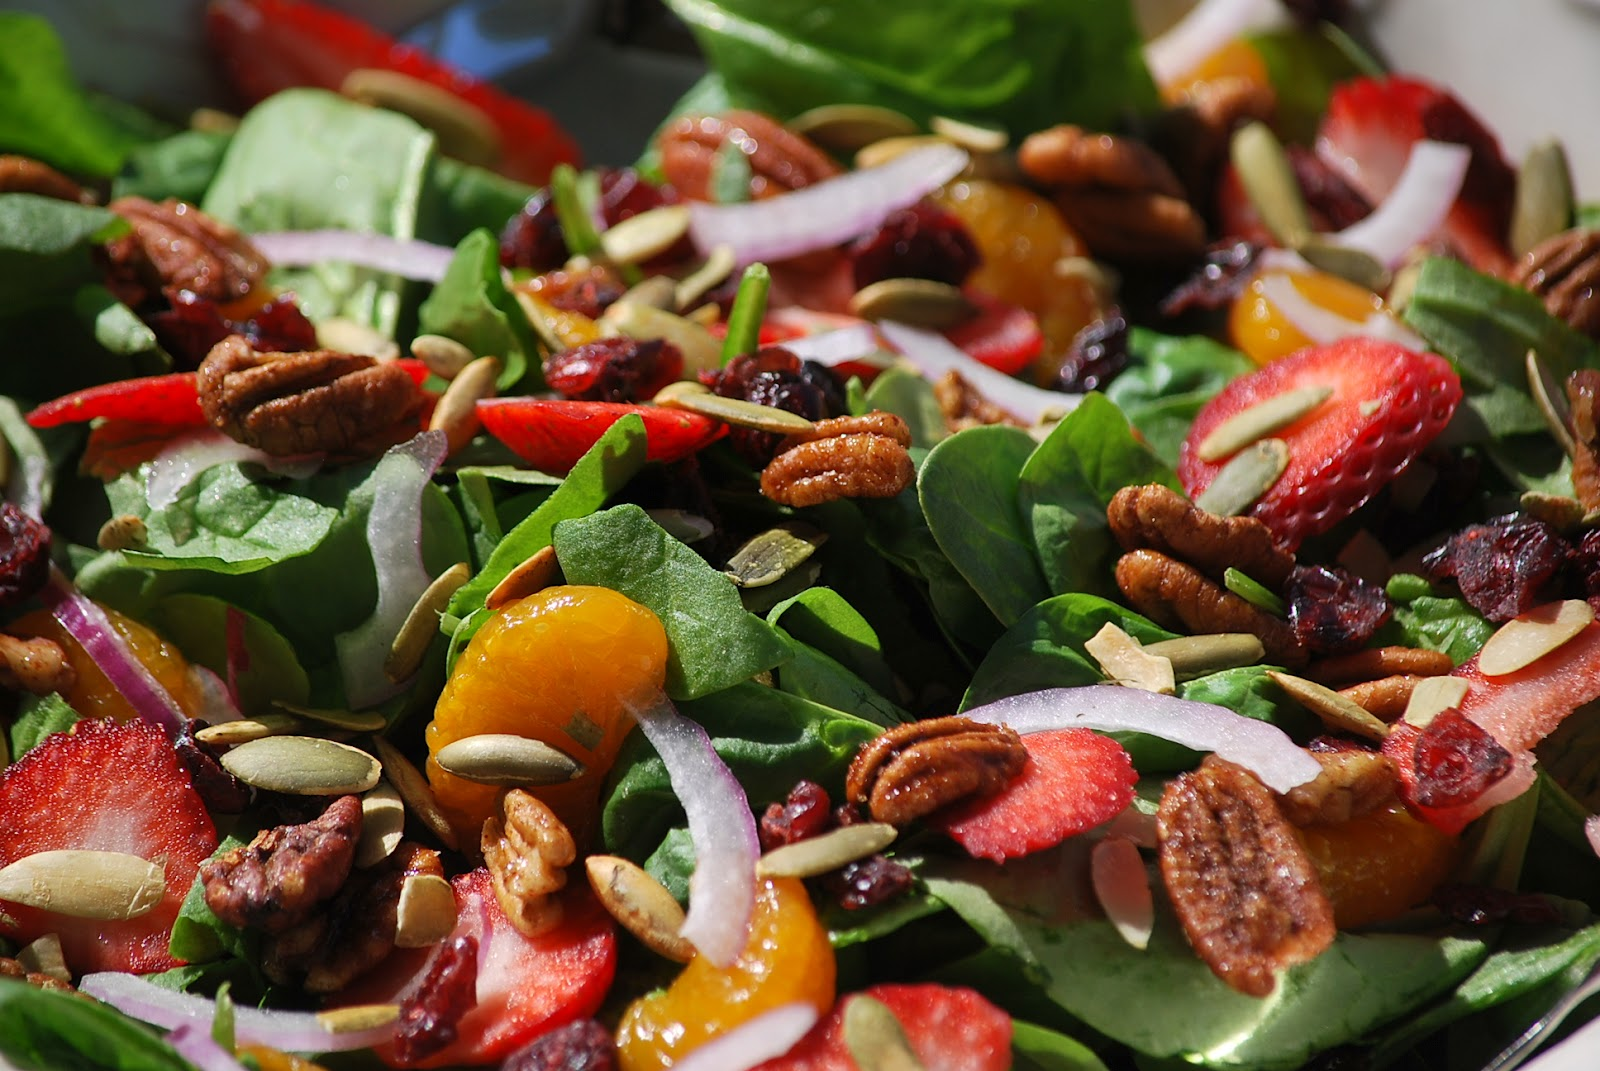 Forum on this topic: Citrus, Turkey, and Spinach Salad, citrus-turkey-and-spinach-salad/